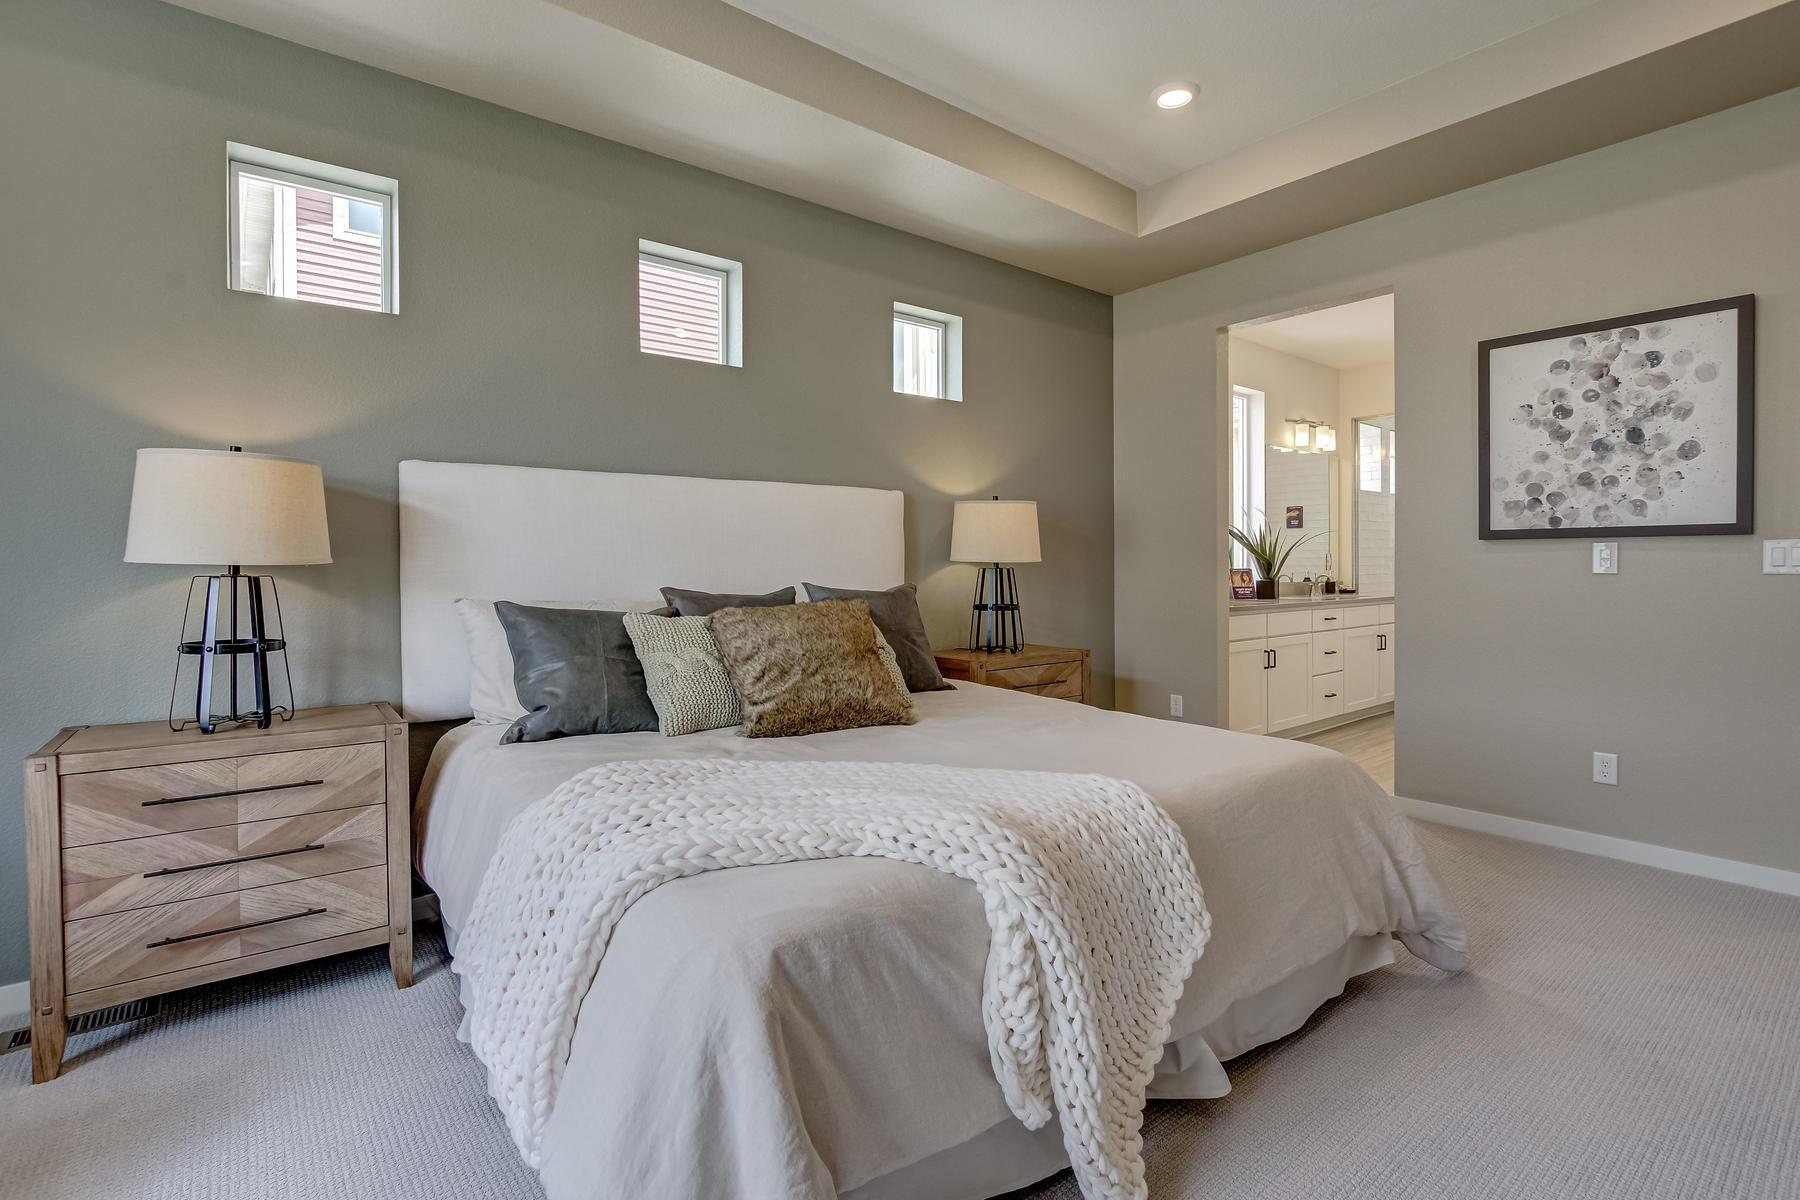 Bedroom featured in the Crestone By Oakwood Homes in Fort Collins-Loveland, CO